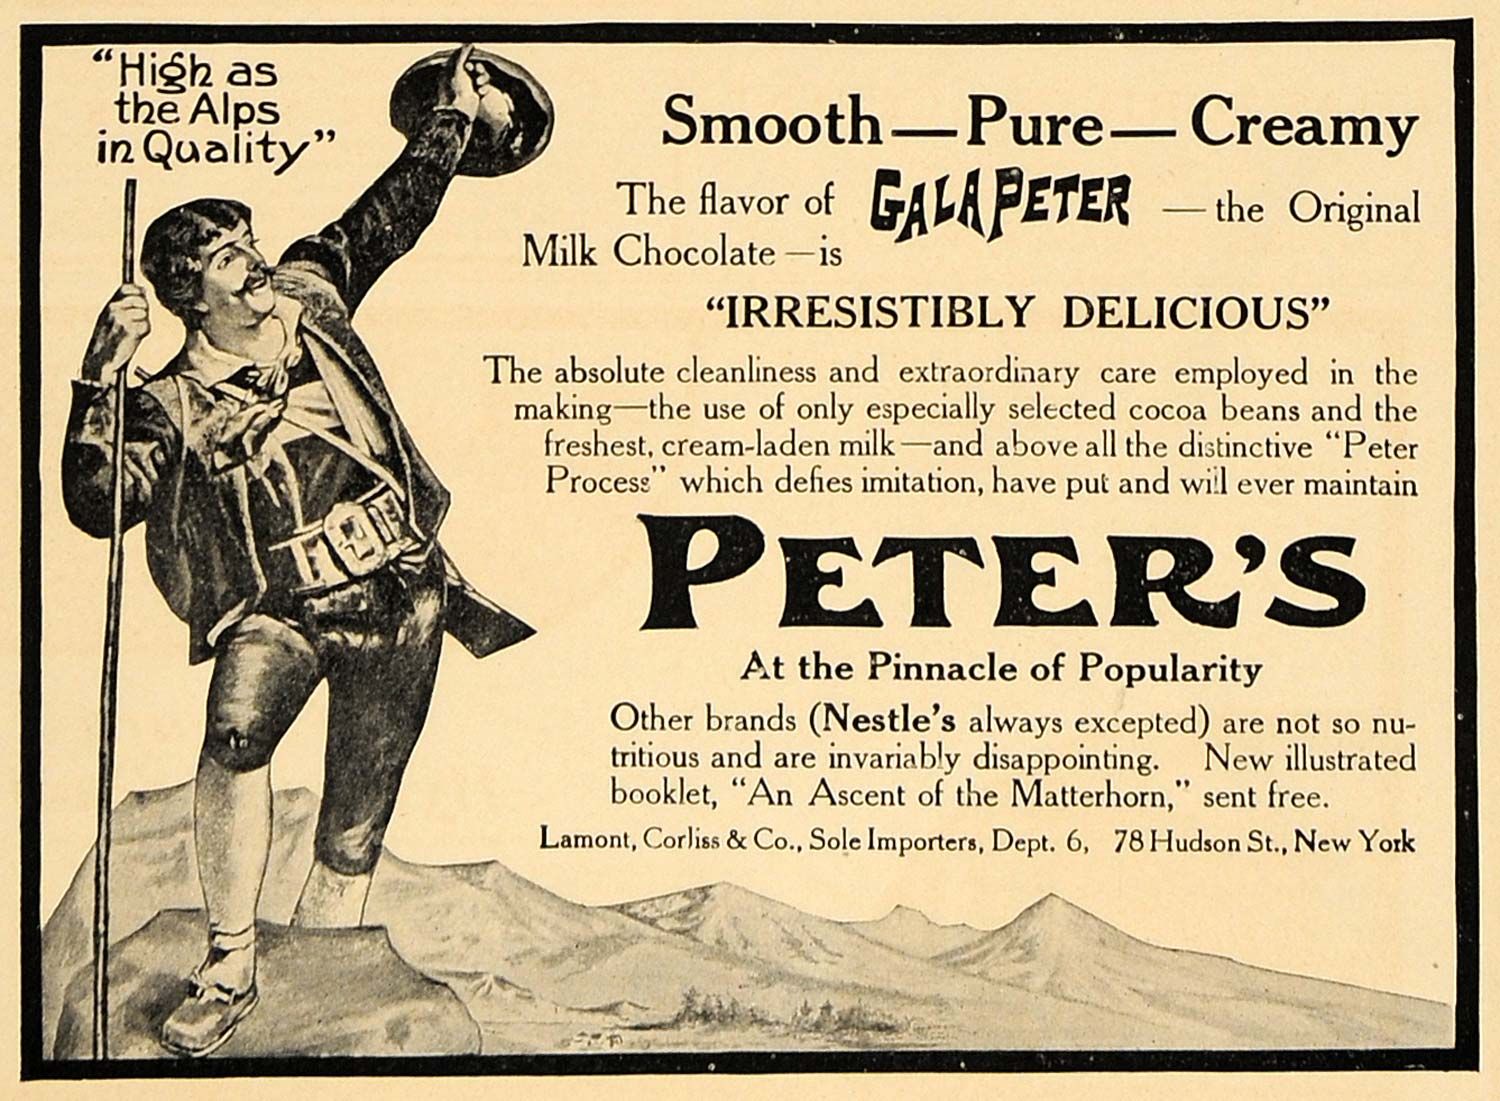 1907 Ad Gala Peter's Milk Chocolate Peter Process NY - ORIGINAL ADVERTISING CL4